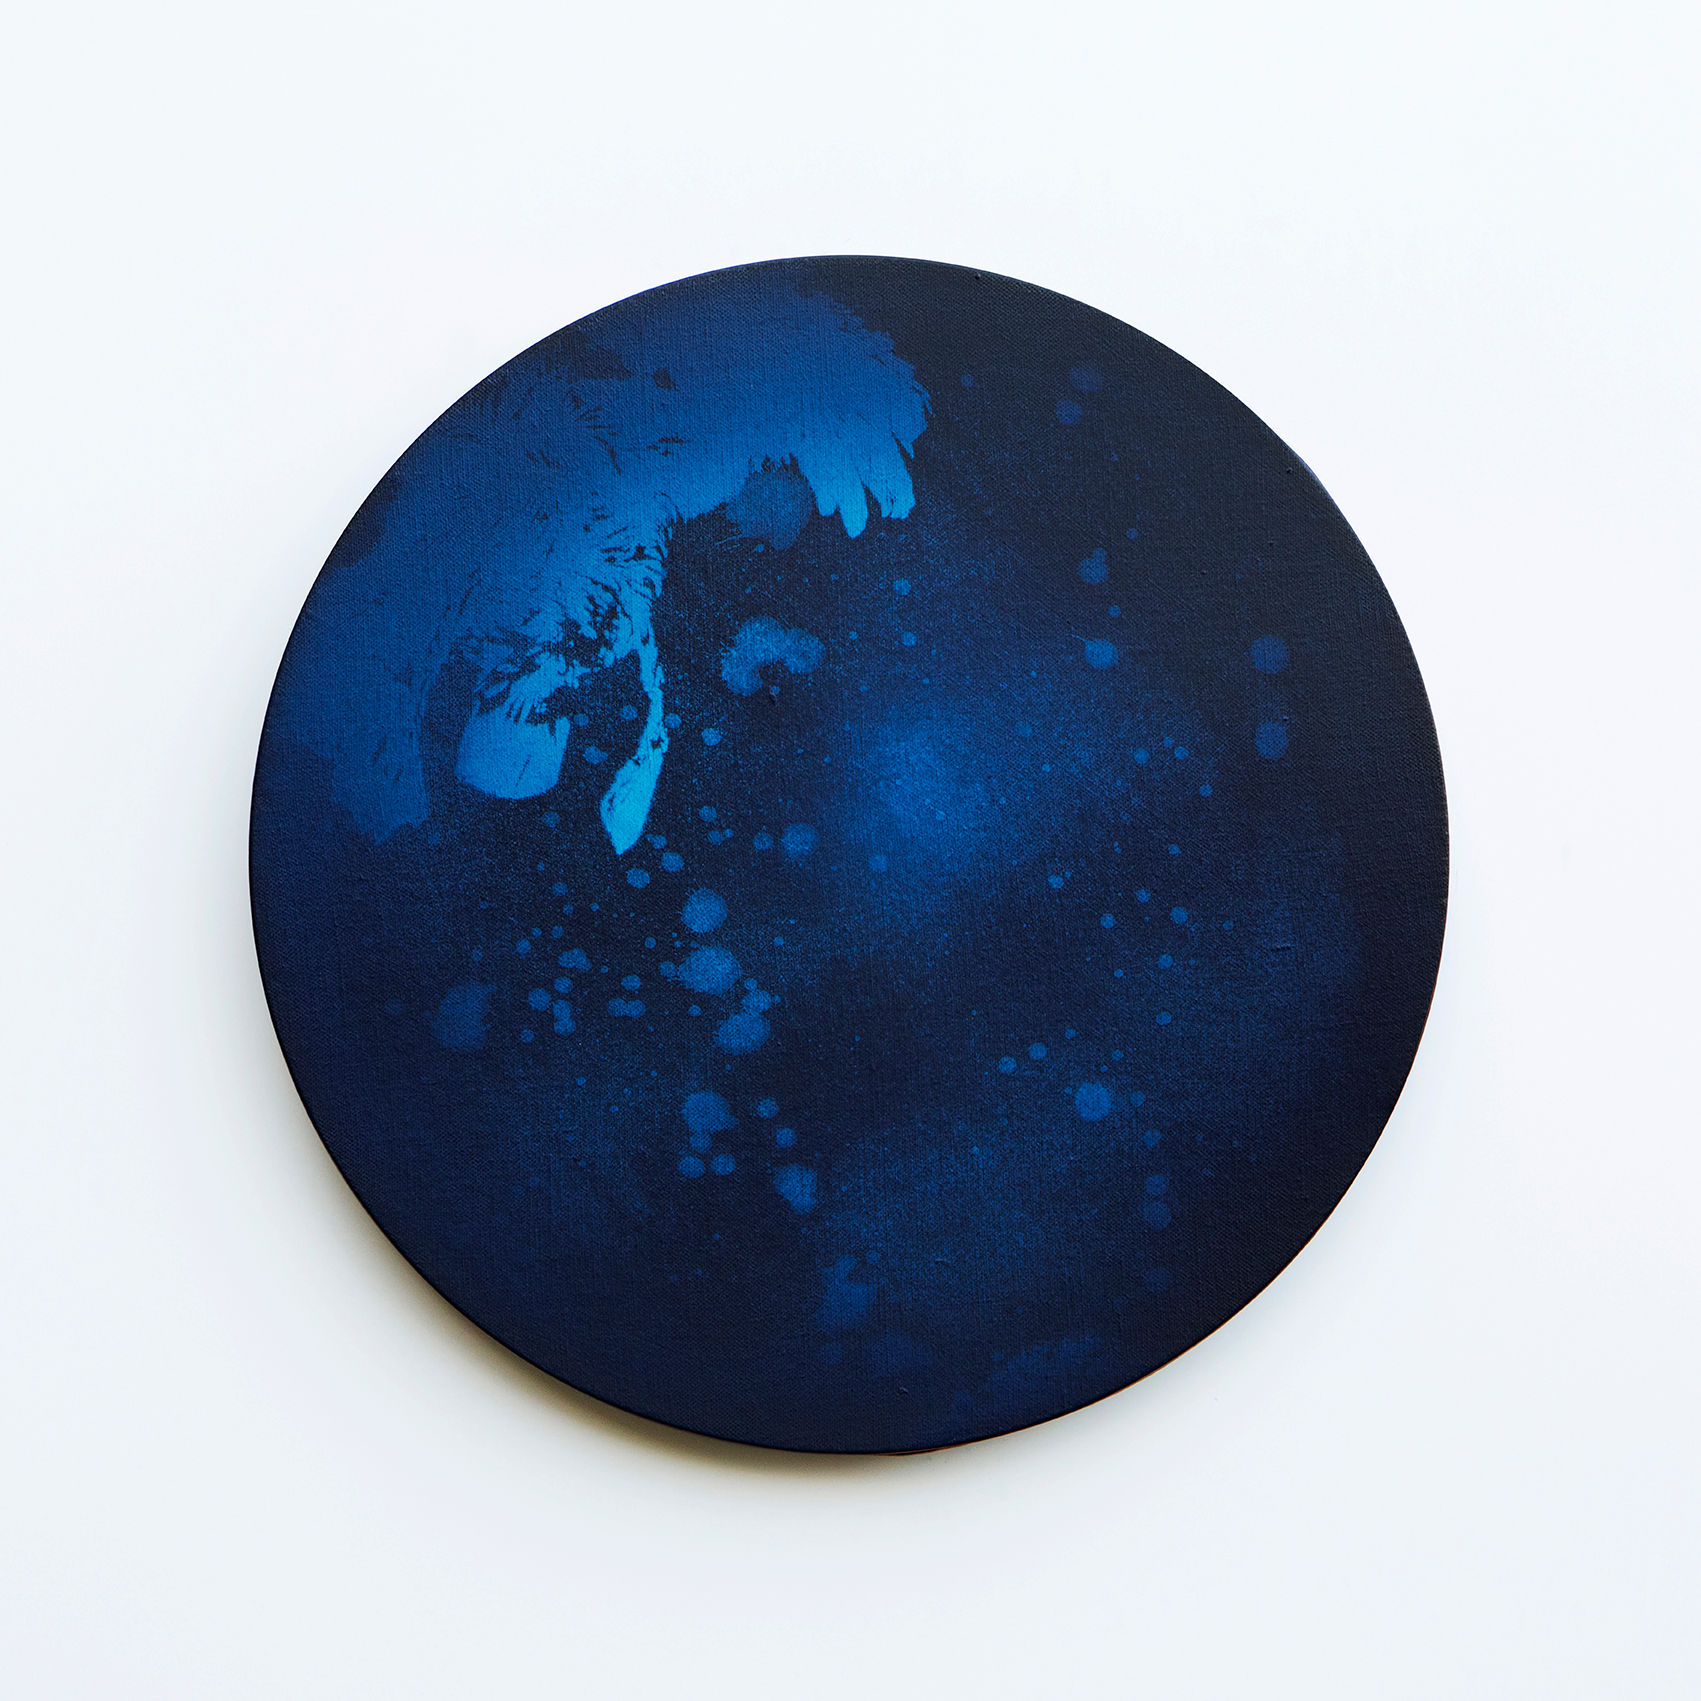 WATERSCAPE_내 안의 바깥 30, Diameter 40cm, Traditional pigment, water-print, water-drawing on canvas, 2018